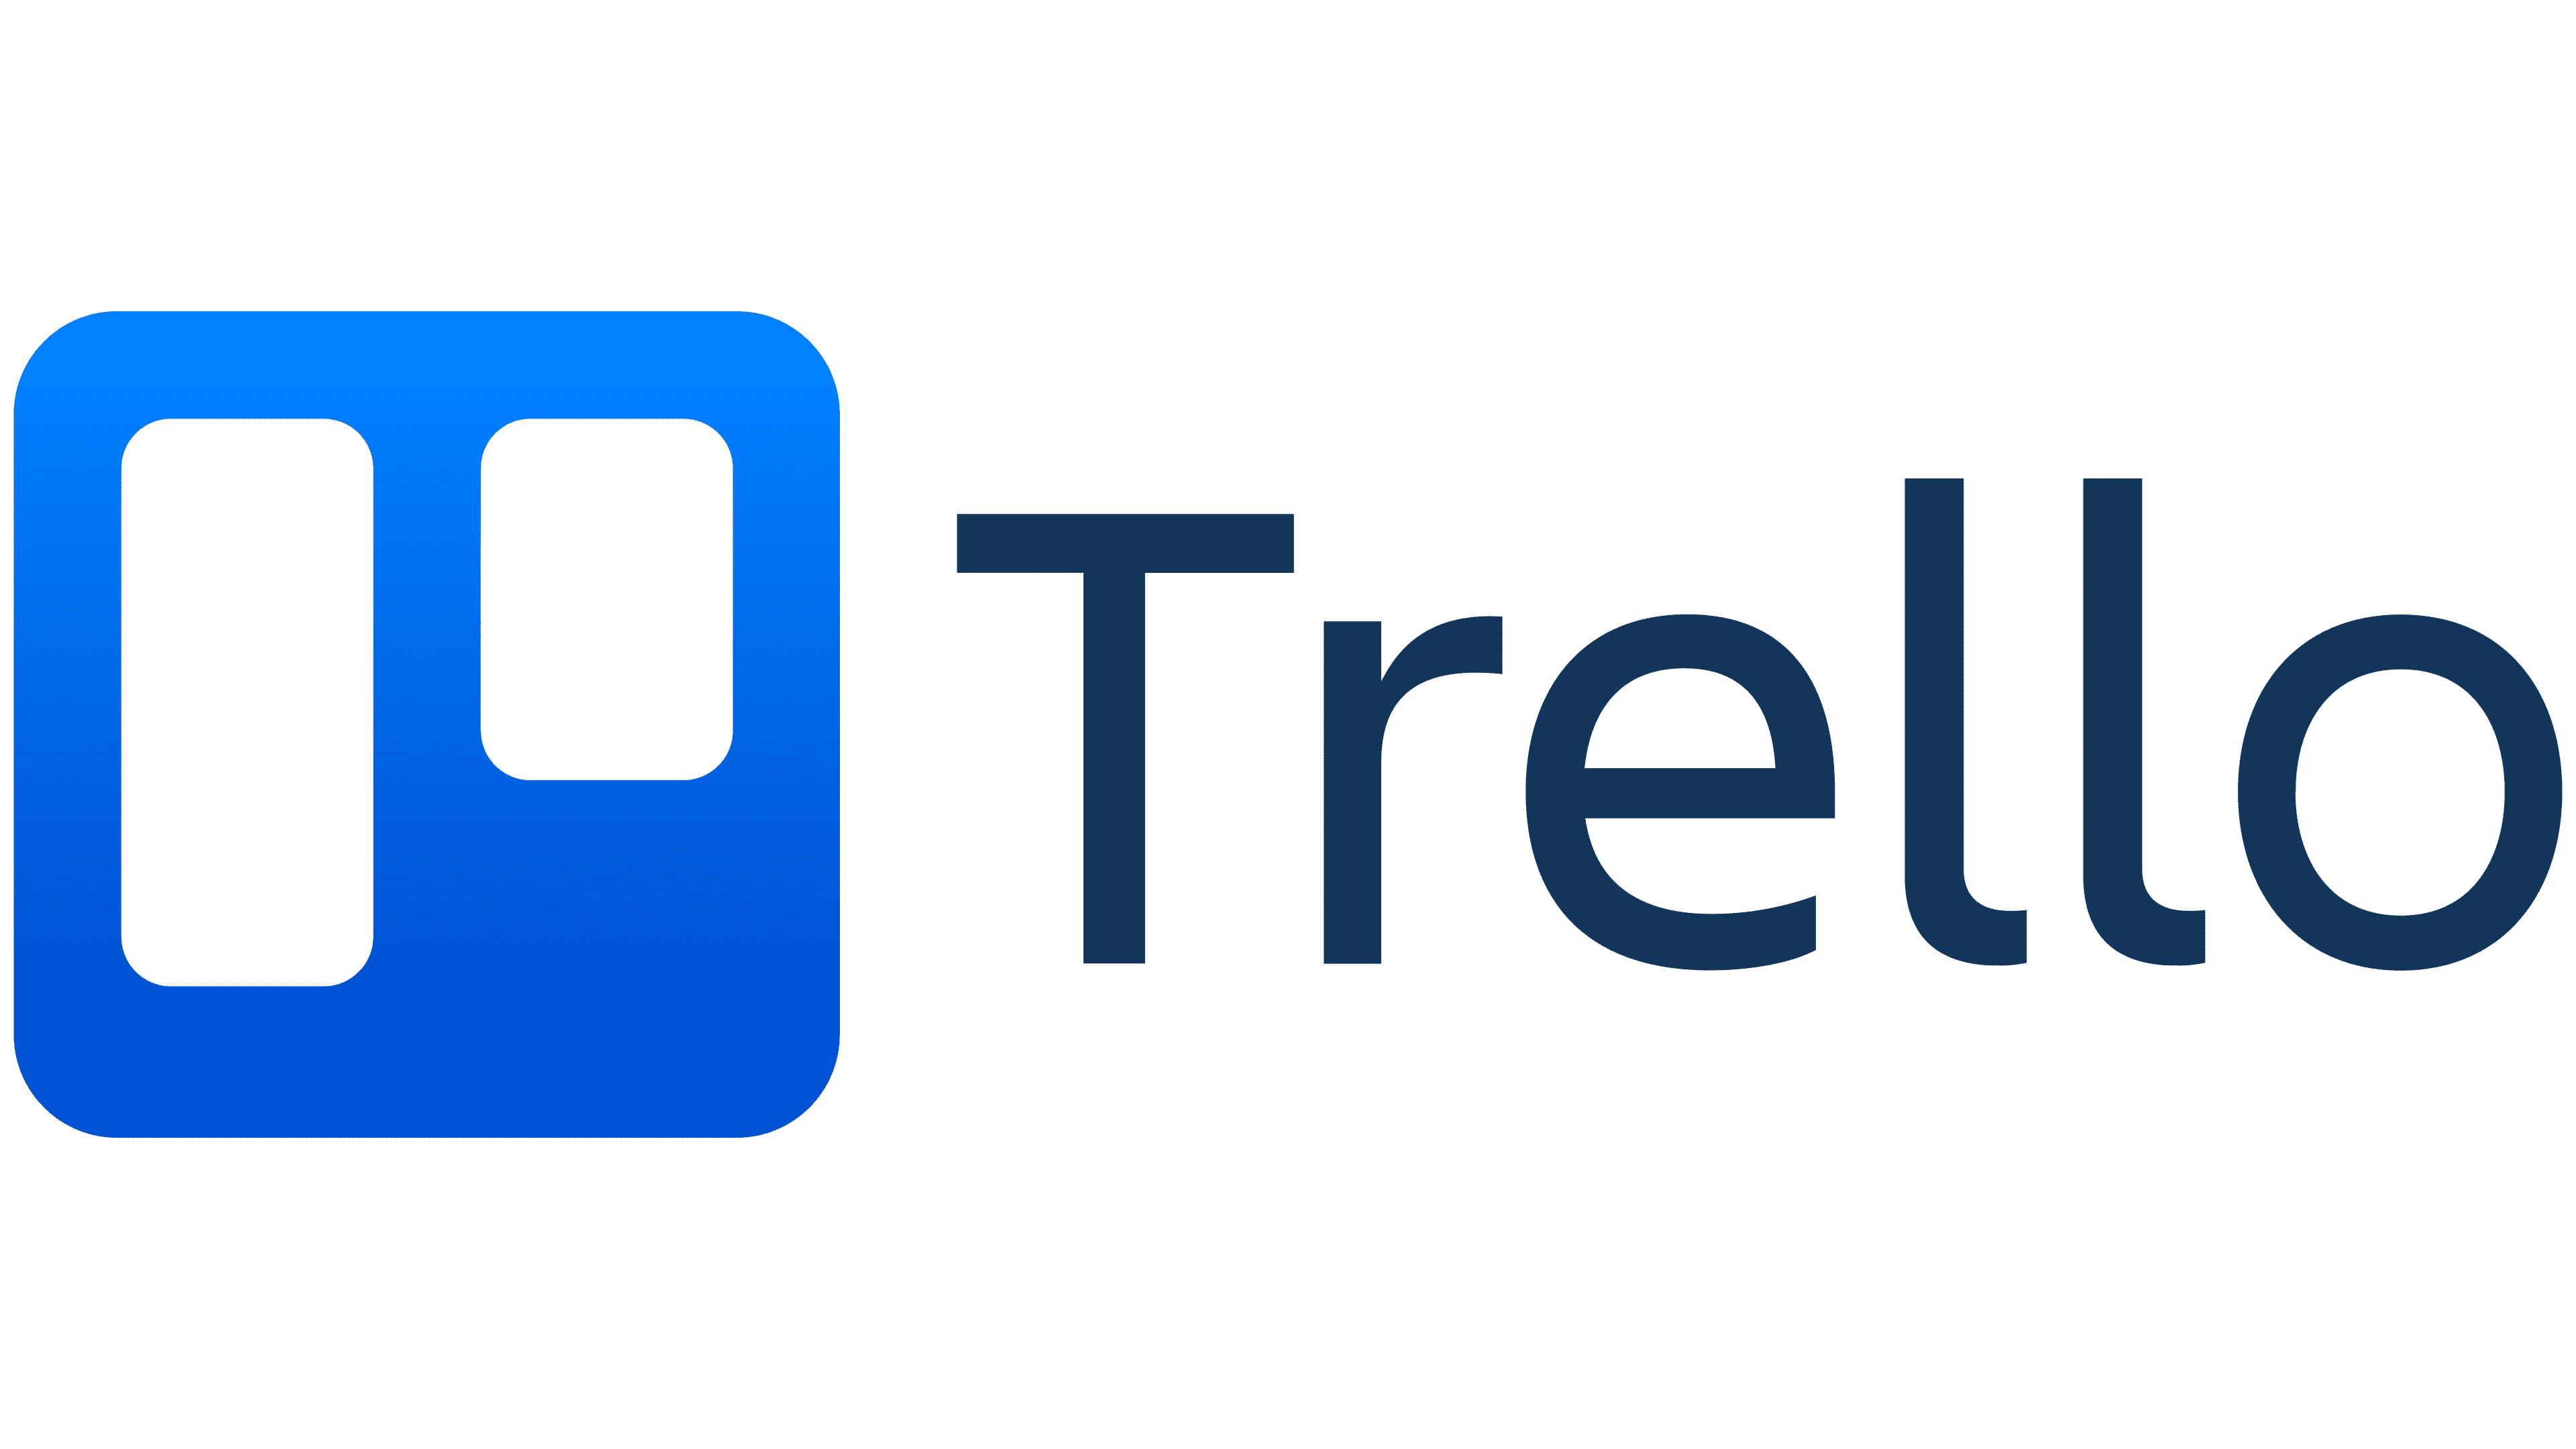 Trello Logo | The most famous brands and company logos in the world